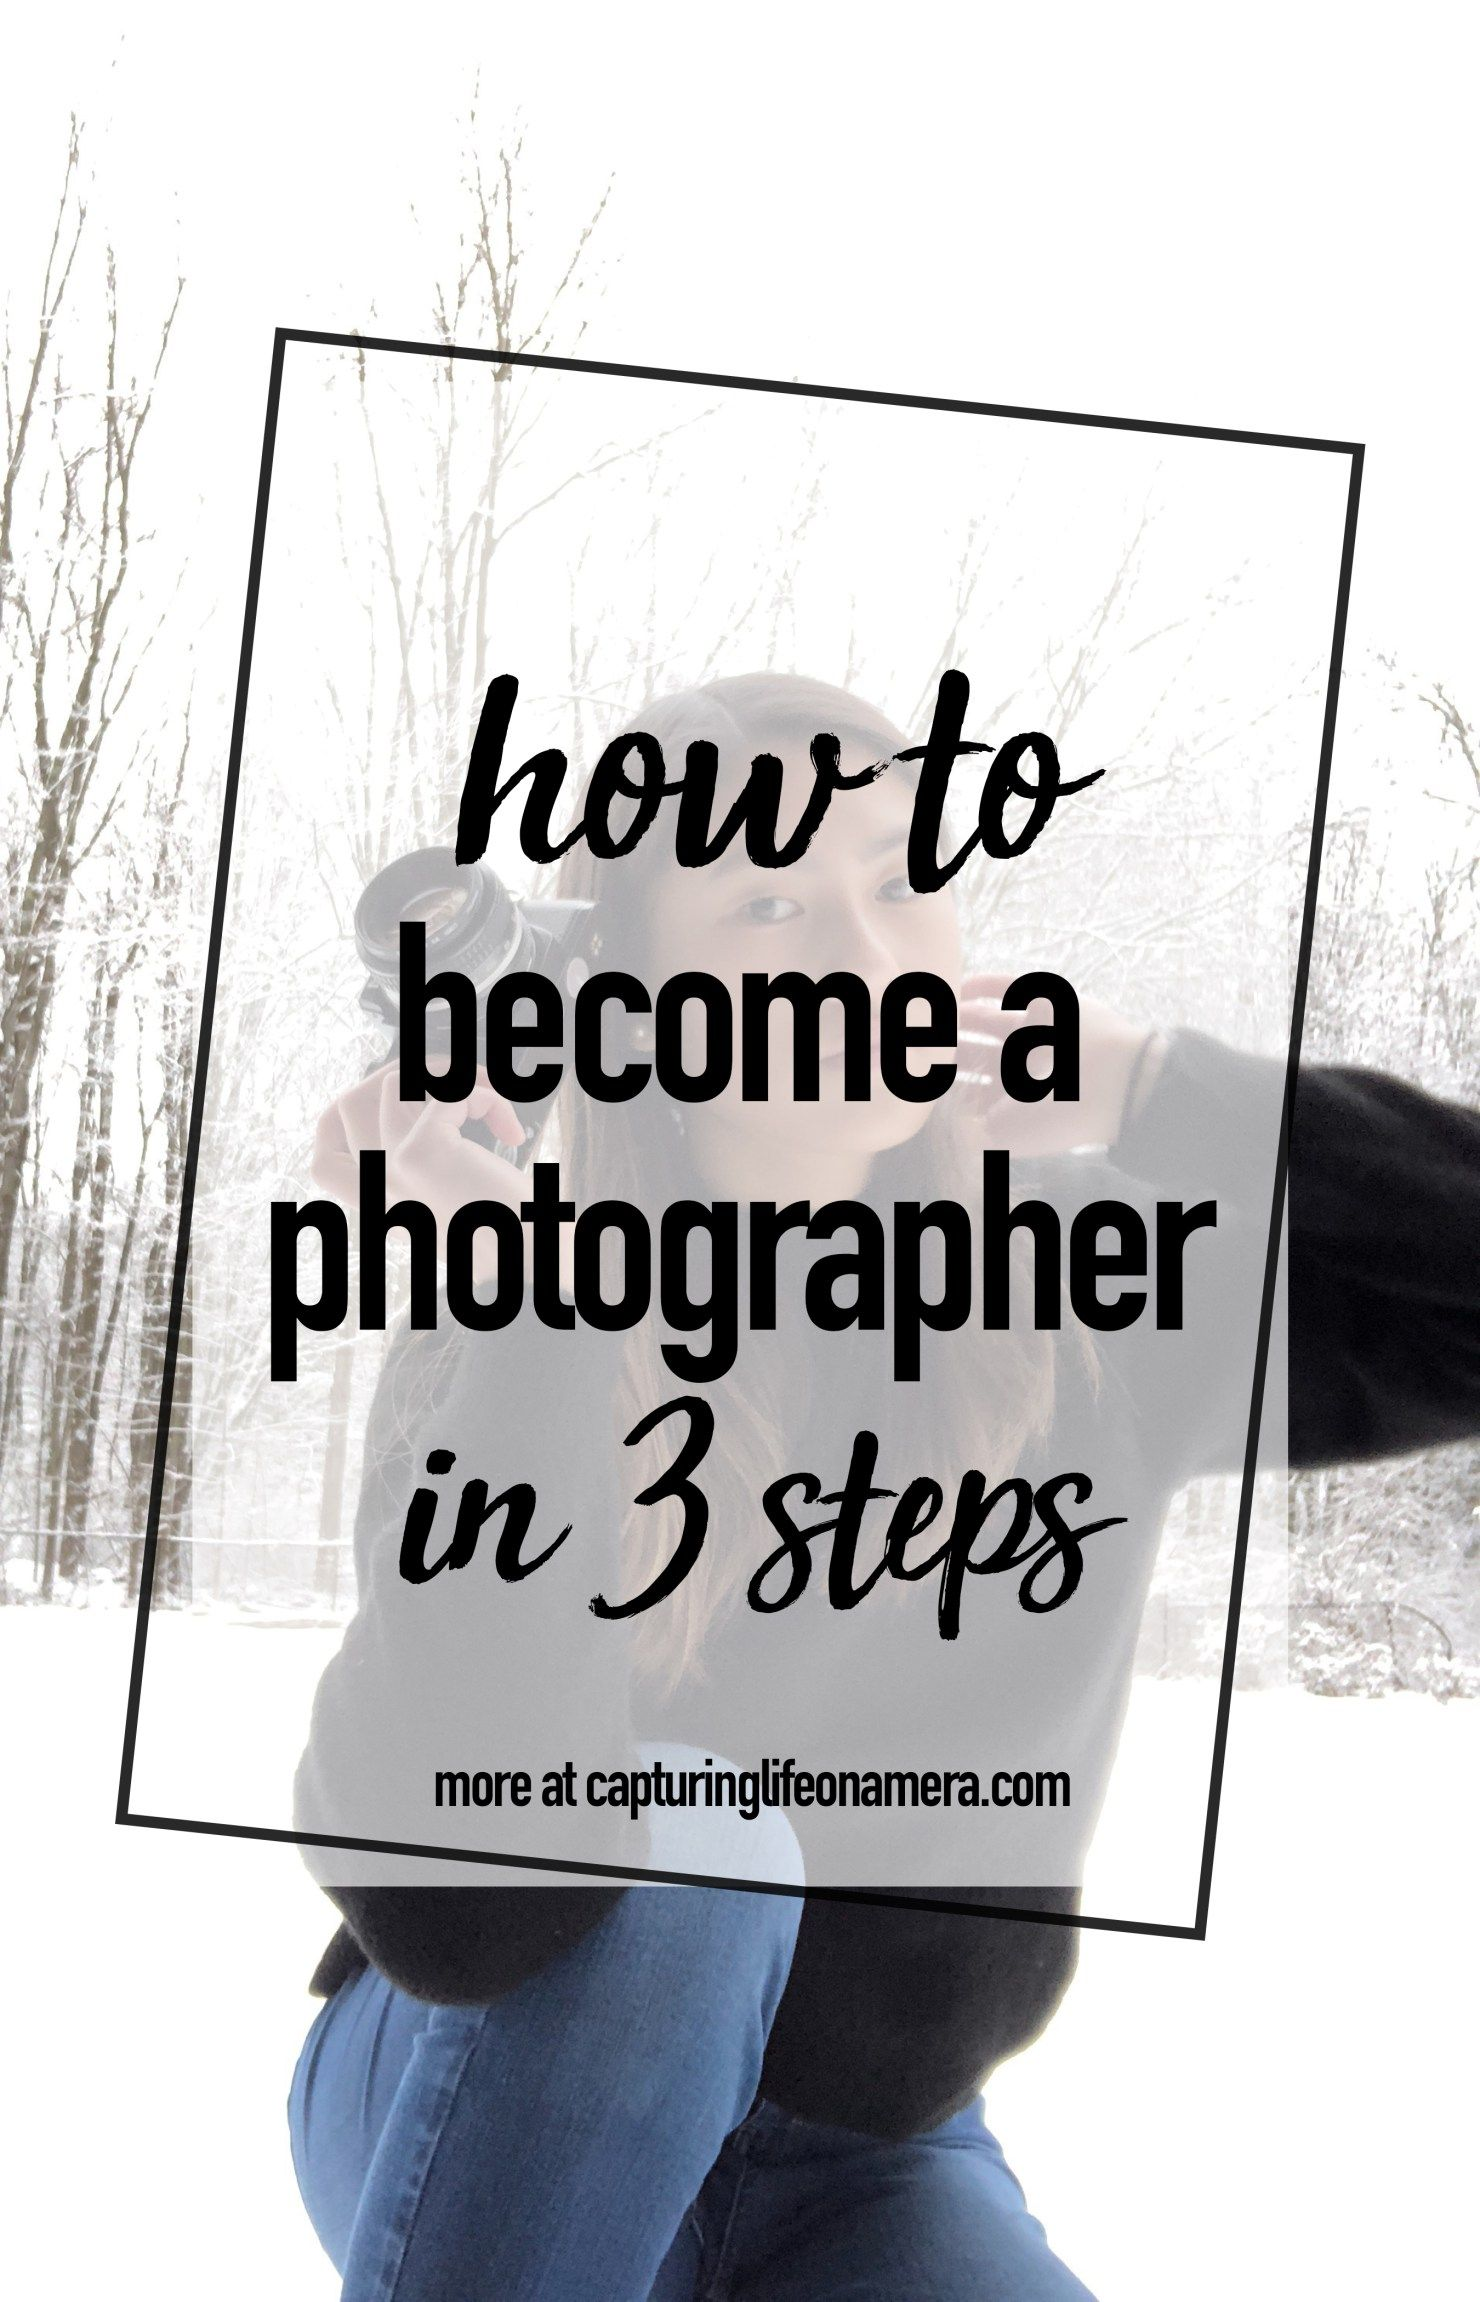 Capturing Life On Camera - How to Become a Photographer in 3 Steps - Capturing Life On Camera